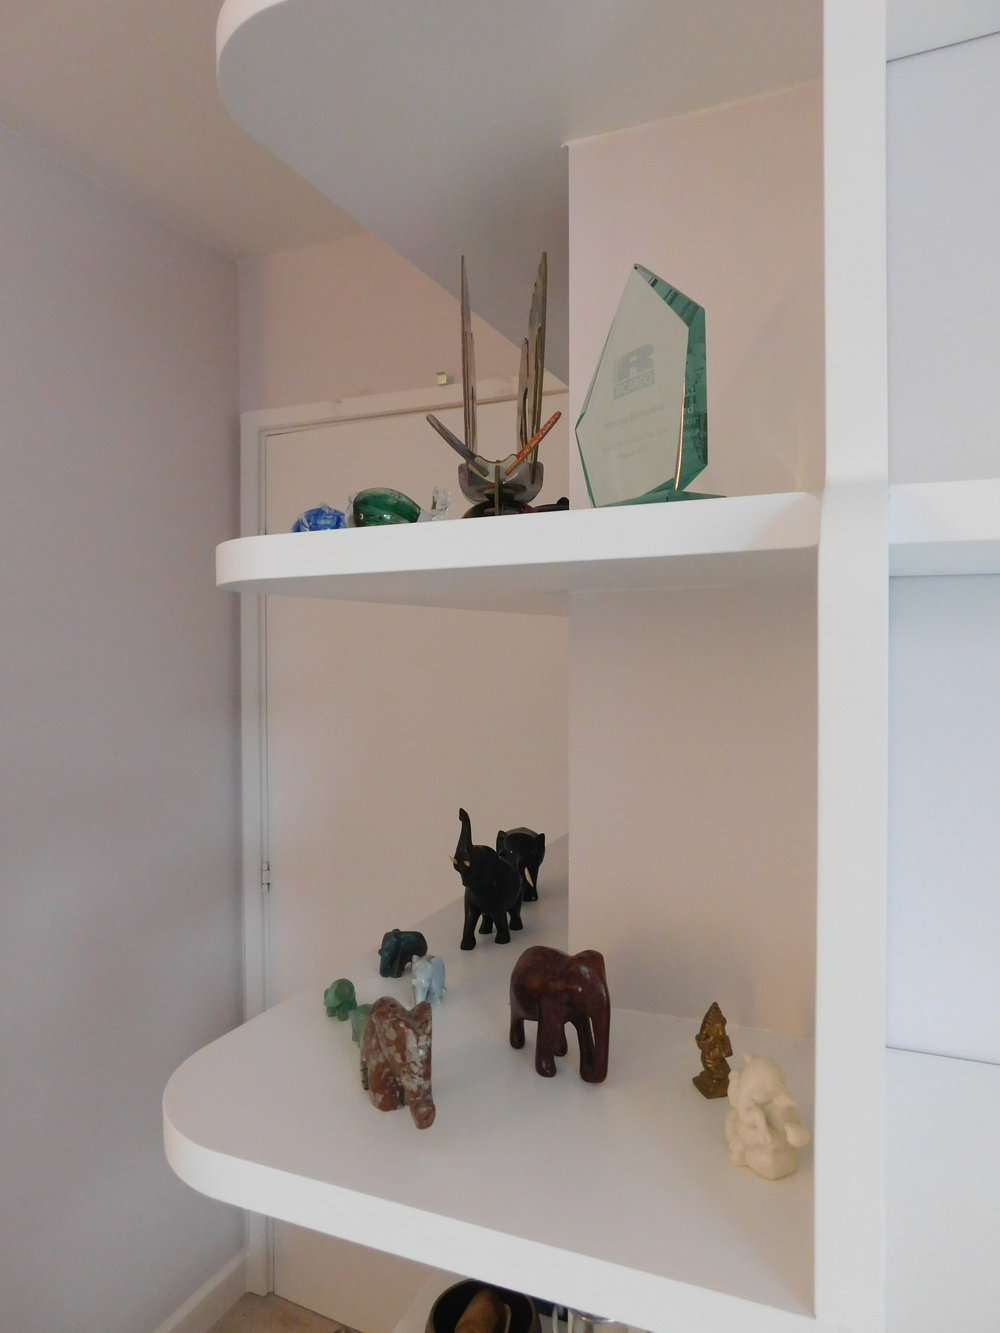 Wrap-around corner shelving